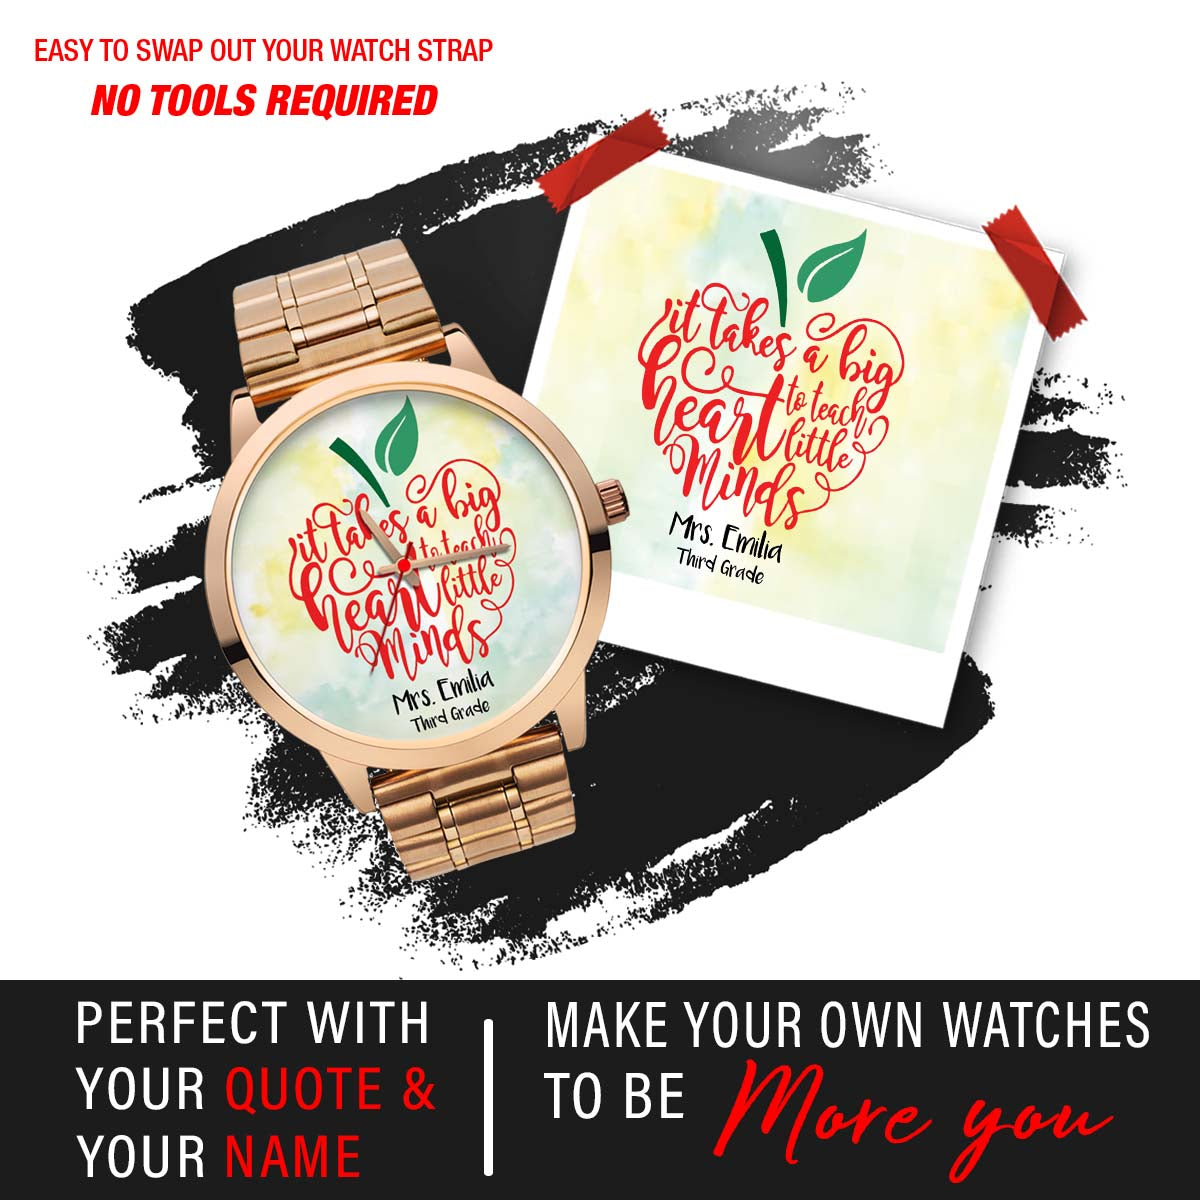 PERSONALIZED WATCH - ADD YOUR FAVORITE QUOTE & YOUR NAME